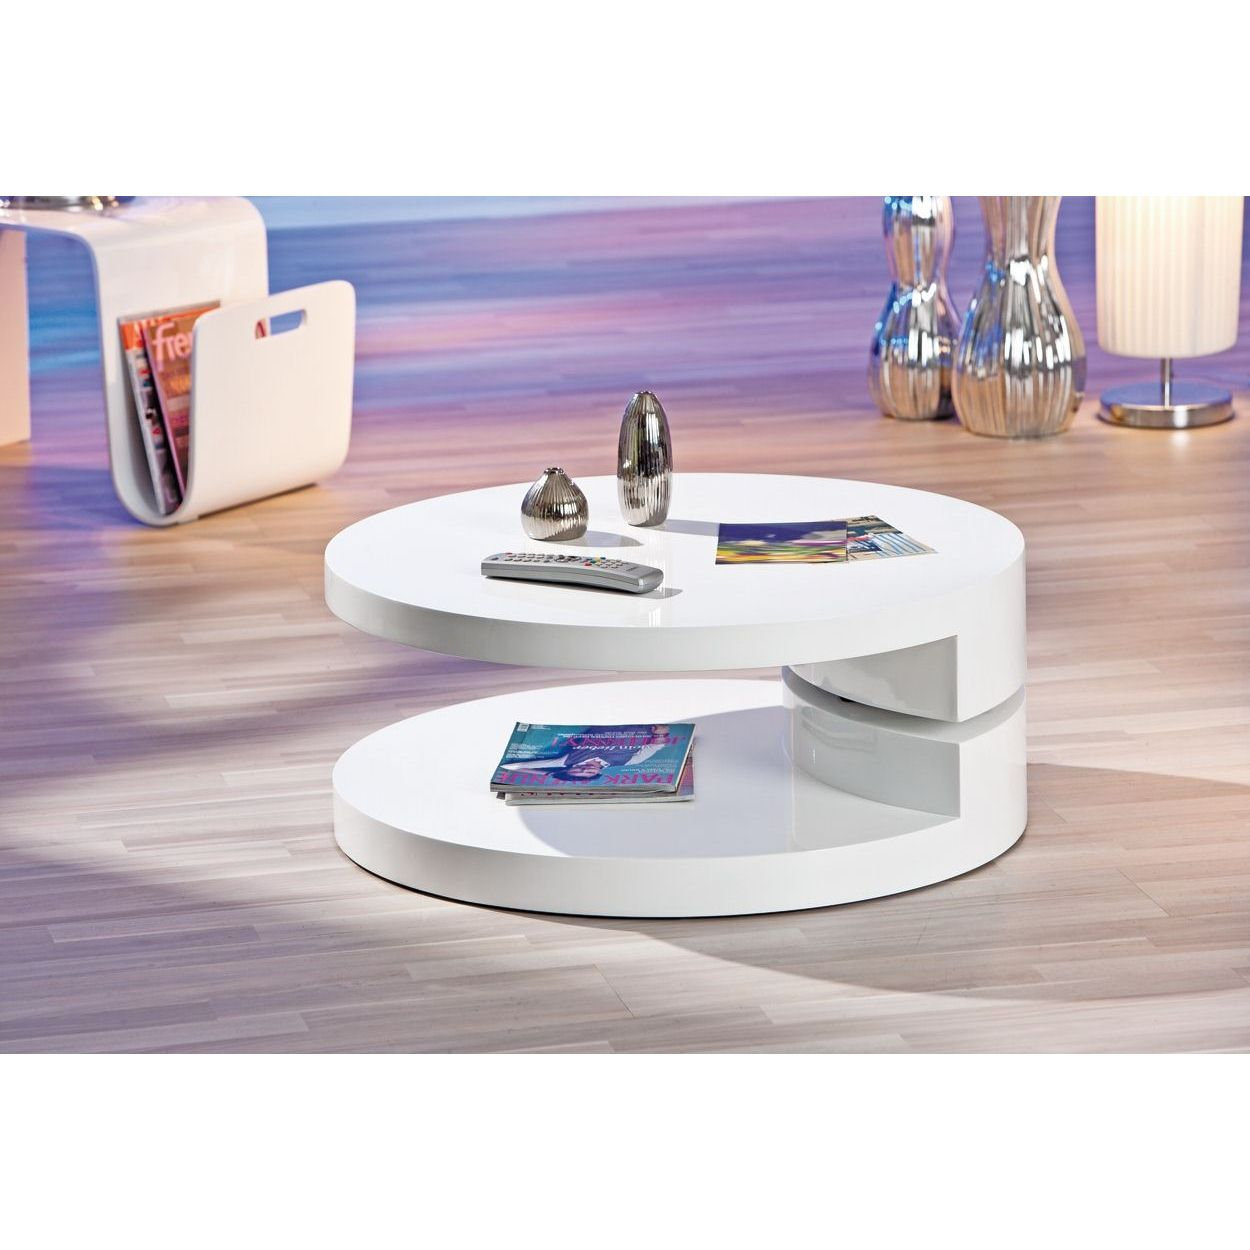 deco in table basse laque blanc ronde extensible ruben ruben laq blanch